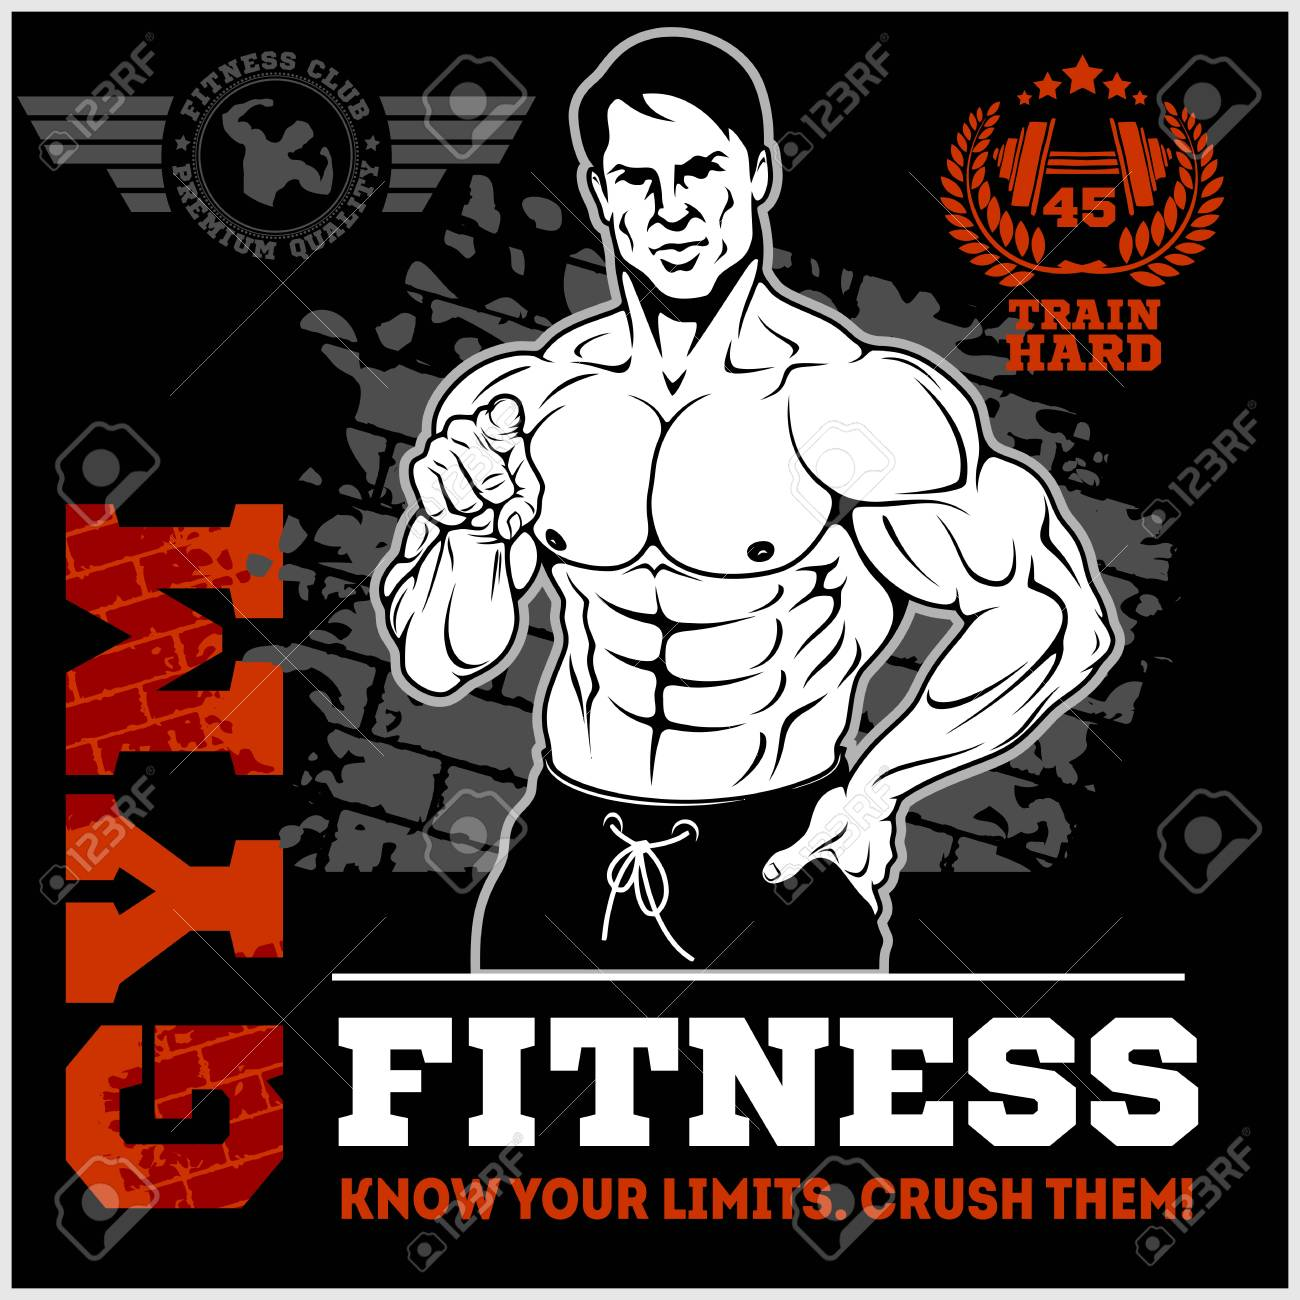 Gym poster template with a bodybuilder pointing a finger